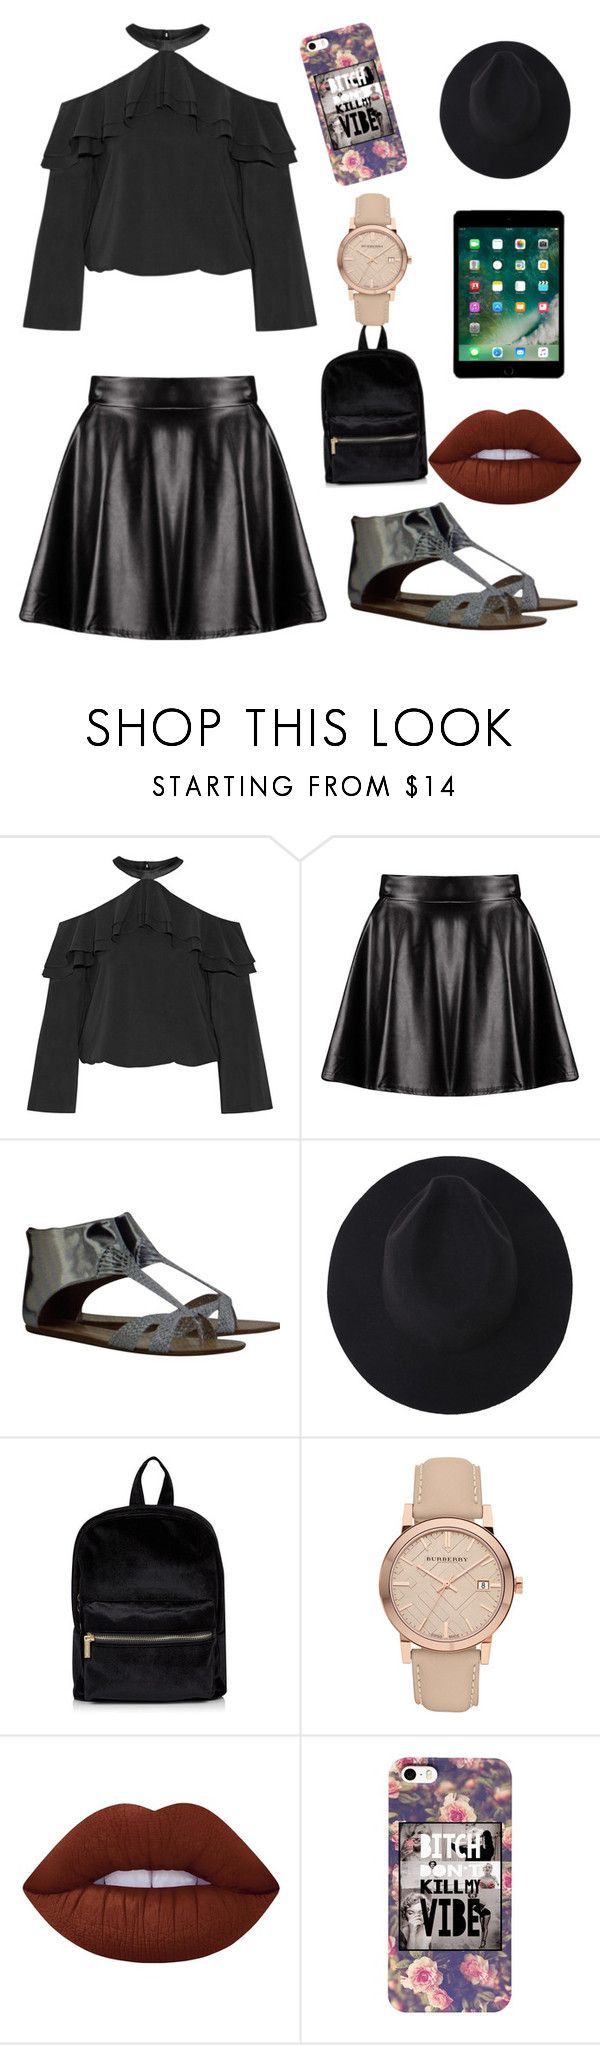 """Untitled #82"" by nicolegarlow ❤ liked on Polyvore featuring Alice + Olivia, Boohoo, Sigerson Morrison, Burberry and Lime Crime"